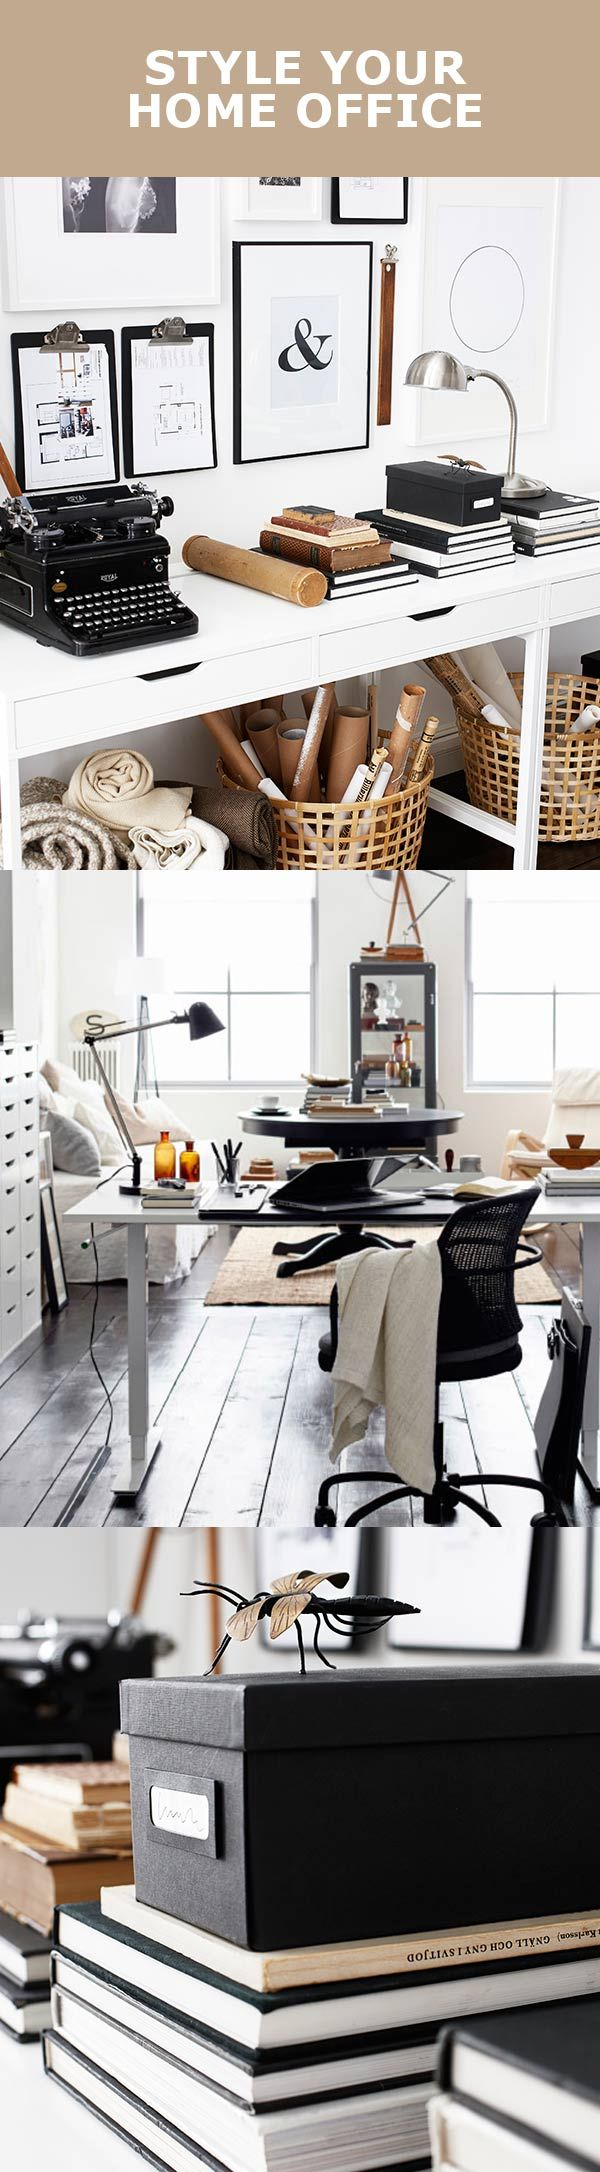 And black and white means your home office style is longer lasting - D6b2b73e34d1ff483c8de637740d1e1a Ikea Office Home Office Jpg